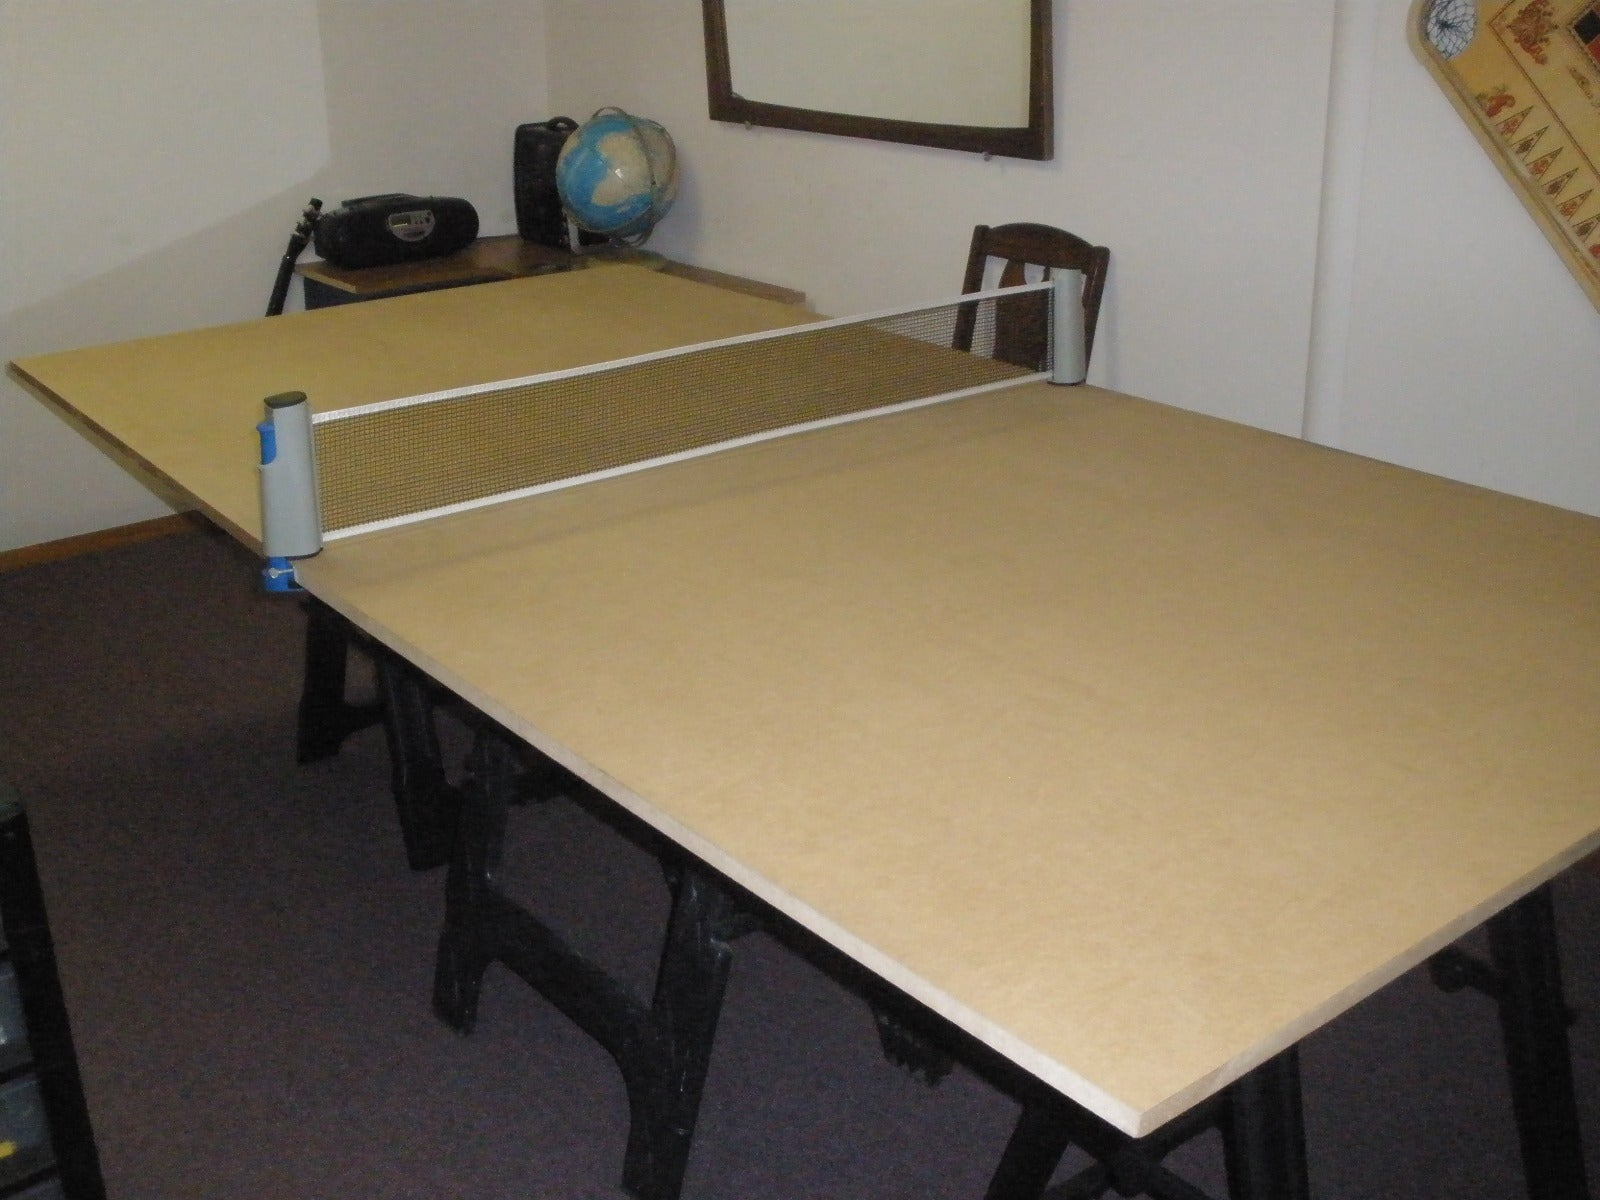 DIY Ping Pong Table : 7 Steps - Instructables